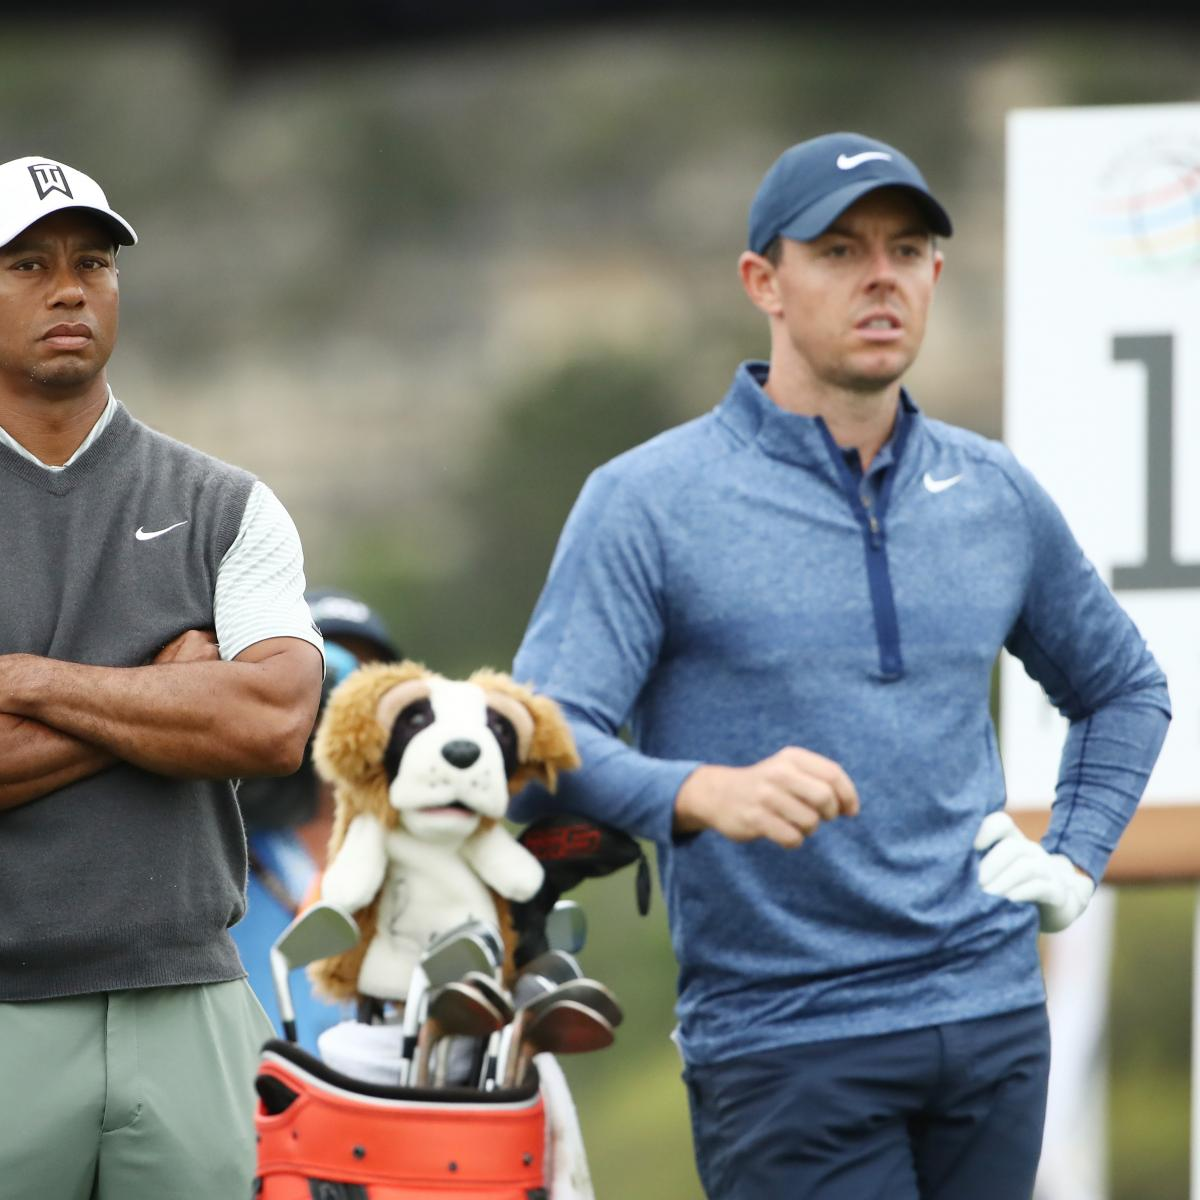 WGC-Dell Technologies Match Play continued at the Austin Country Club in Austin, Texas, on Saturday, with the field continuing to be whittled down throughout the day as the tournament progressed...